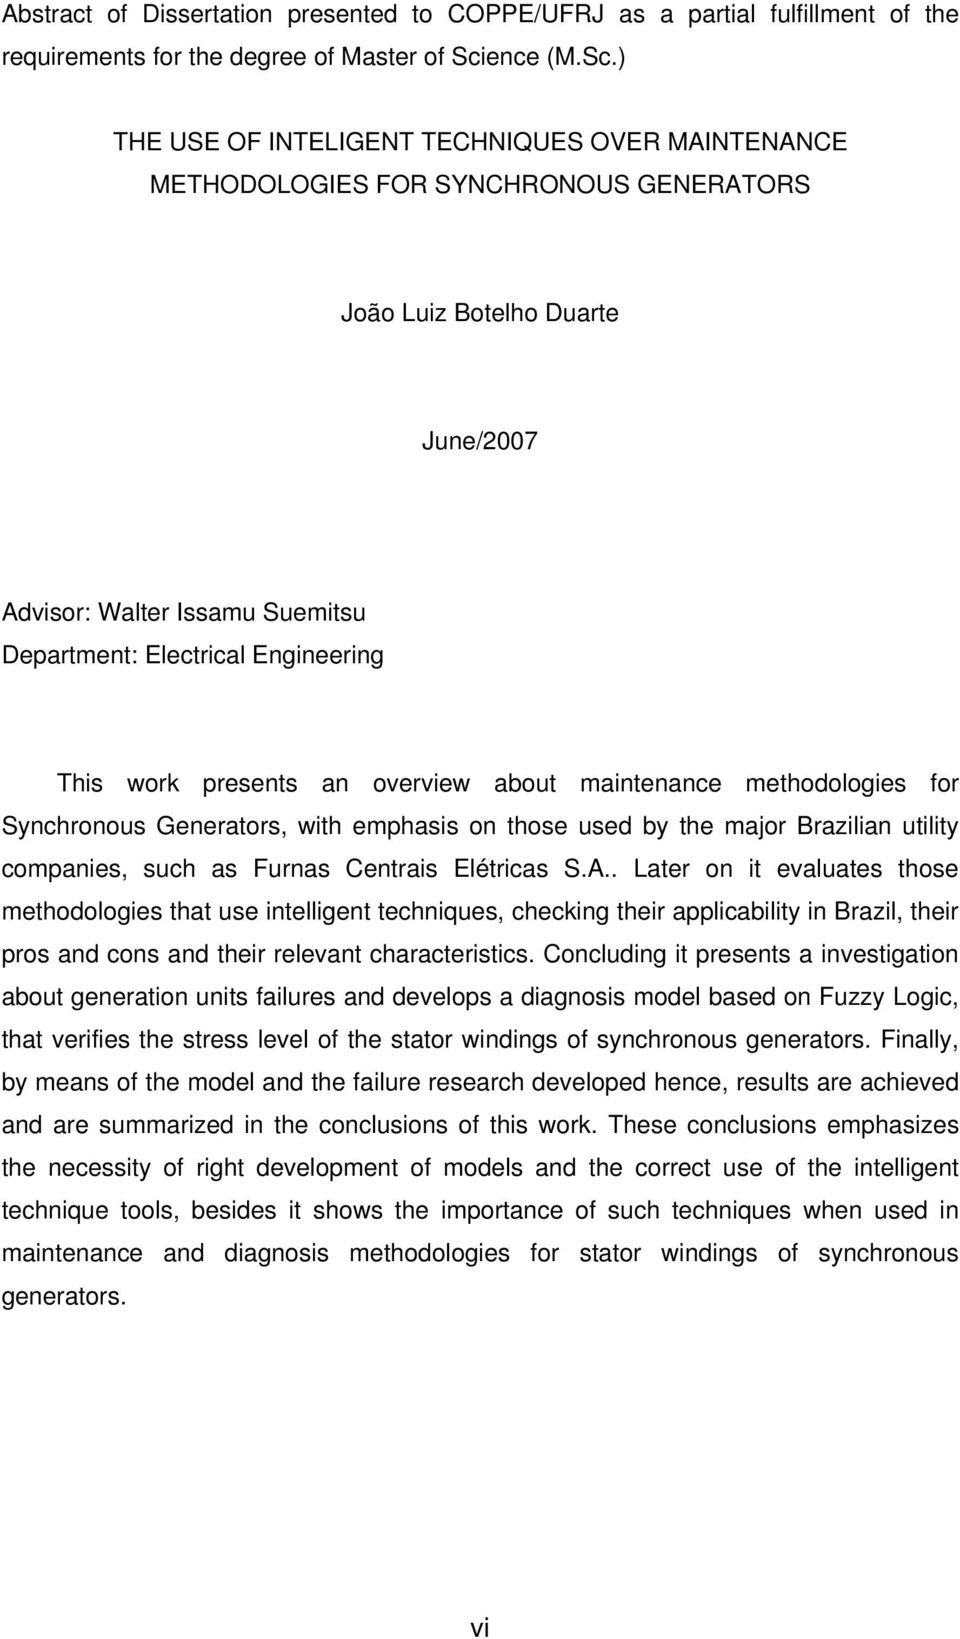 ) THE USE OF INTELIGENT TECHNIQUES OVER MAINTENANCE METHODOLOGIES FOR SYNCHRONOUS GENERATORS João Luiz Botelho Duarte June/2007 Advisor: Walter Issamu Suemitsu Department: Electrical Engineering This